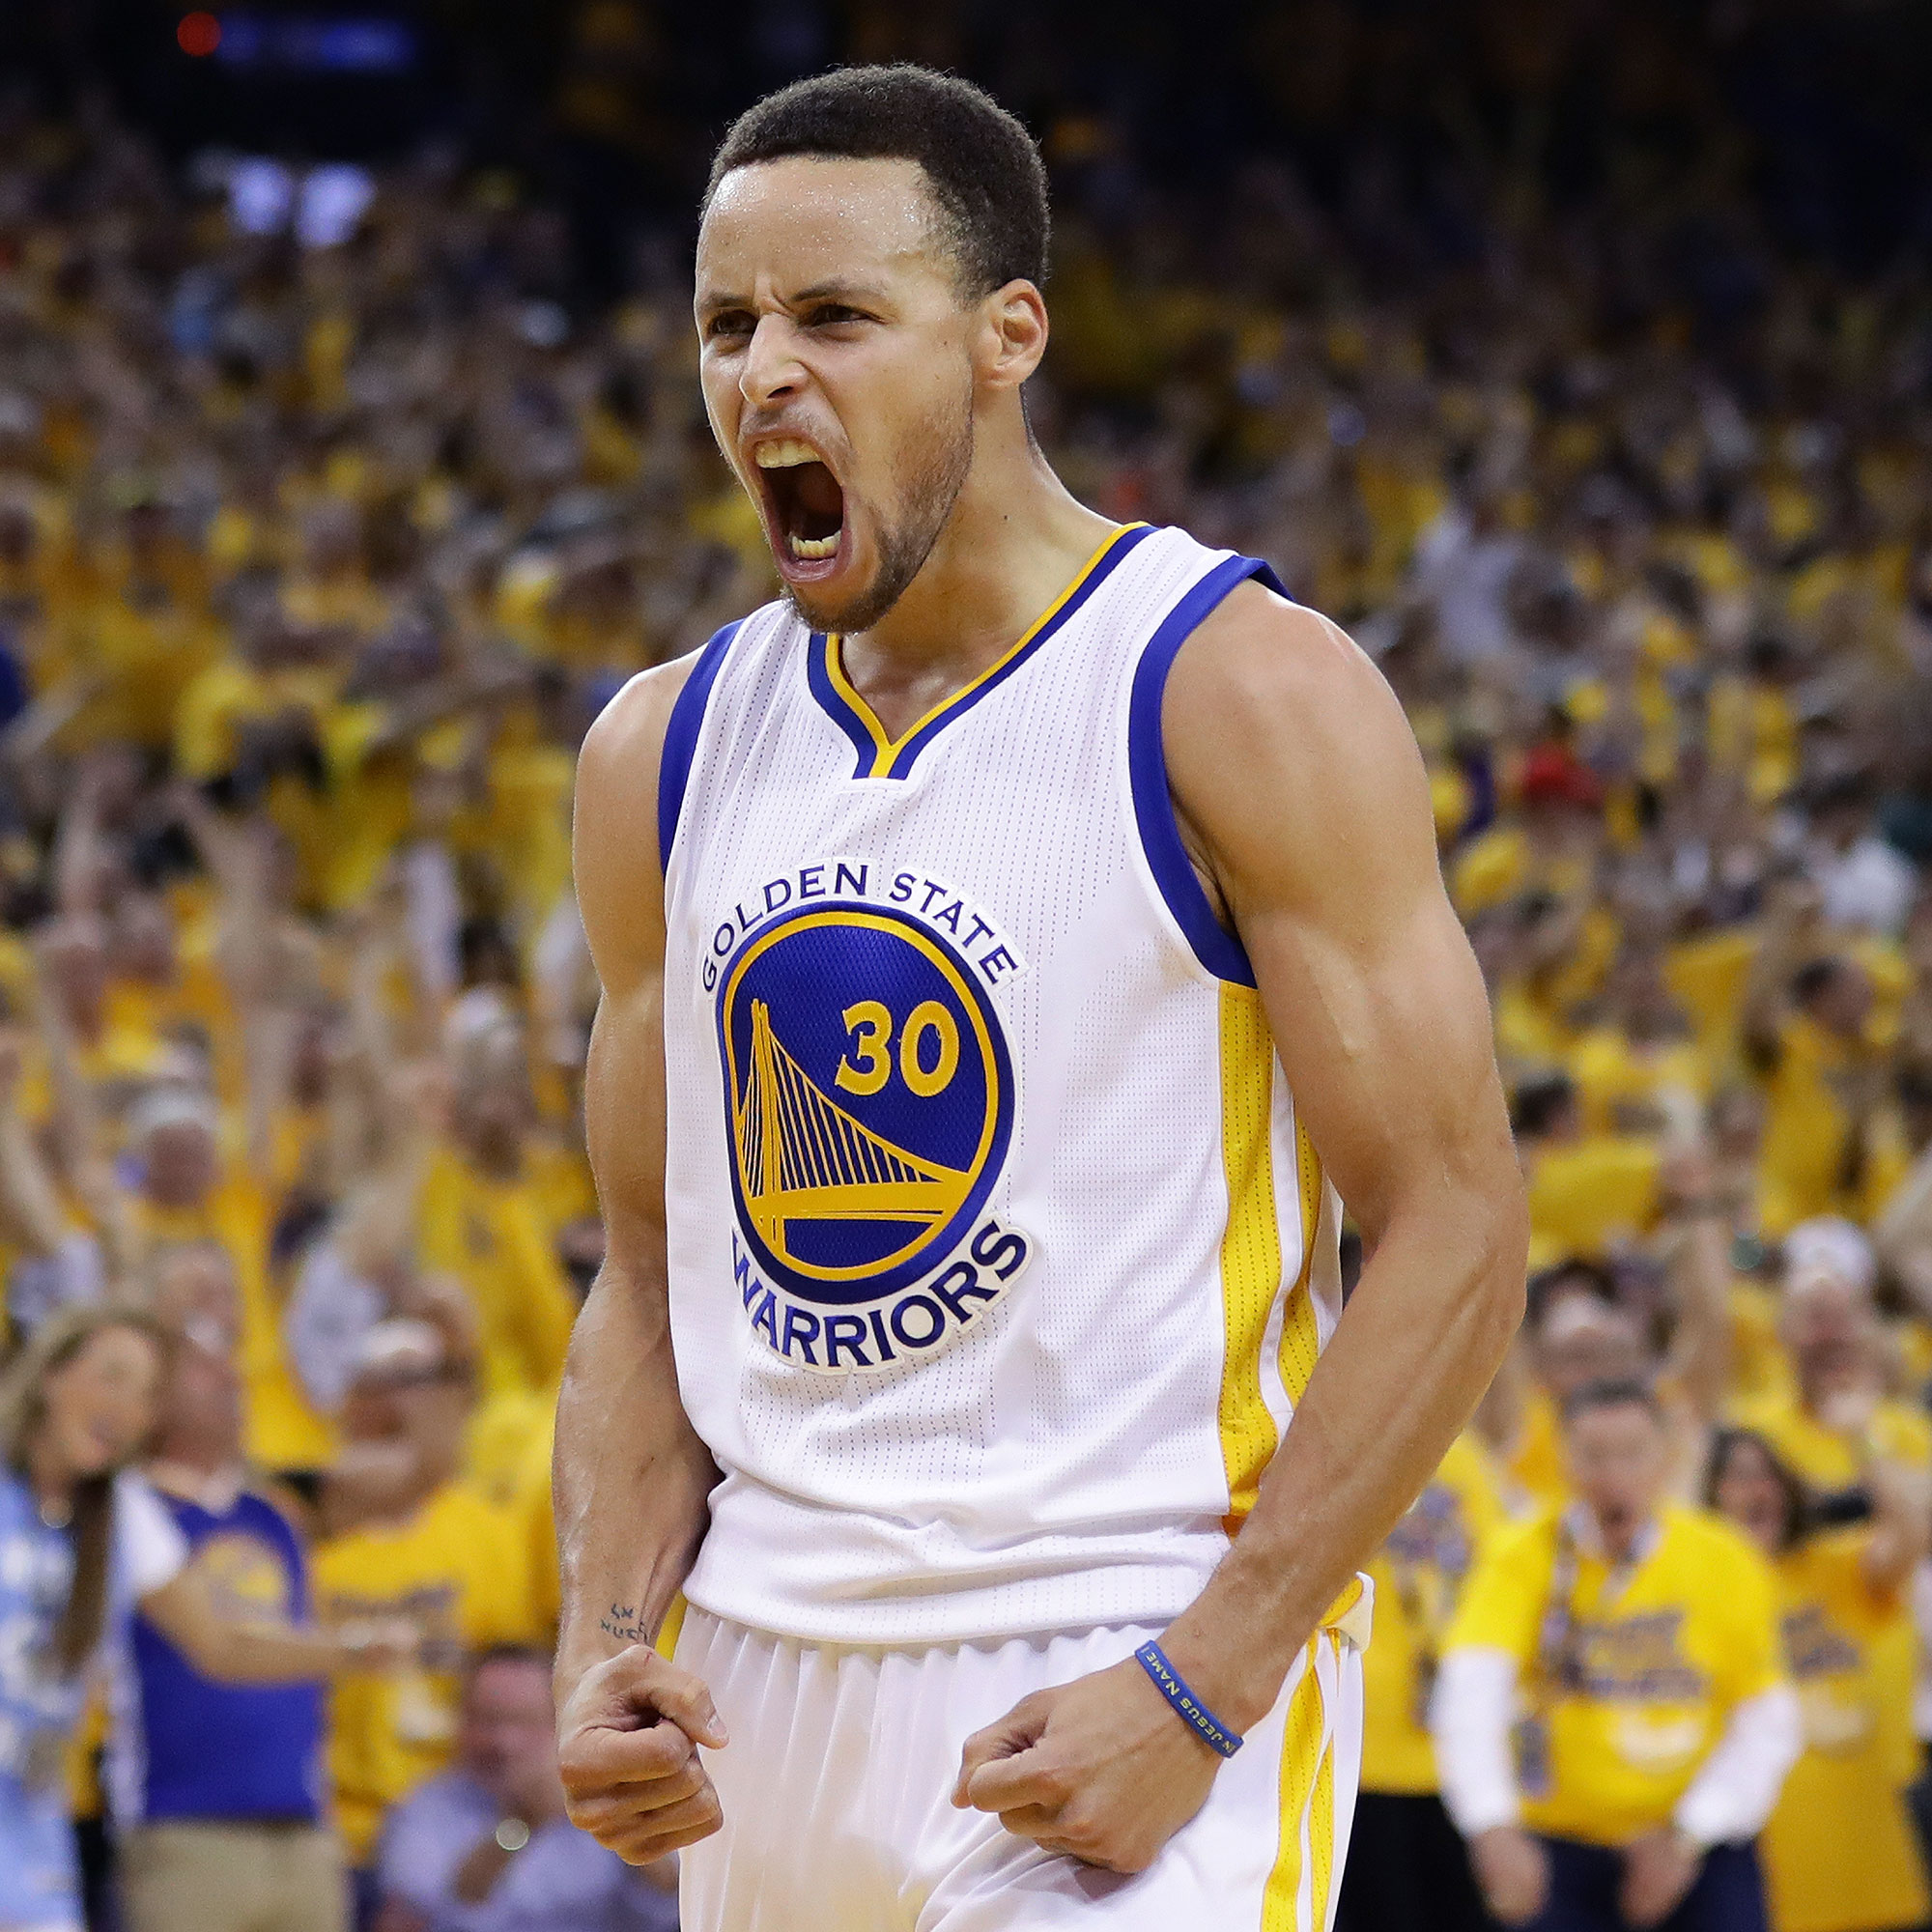 The Golden State Warriors NamedSports Illustrated's 2018 Sportsperson of the Year